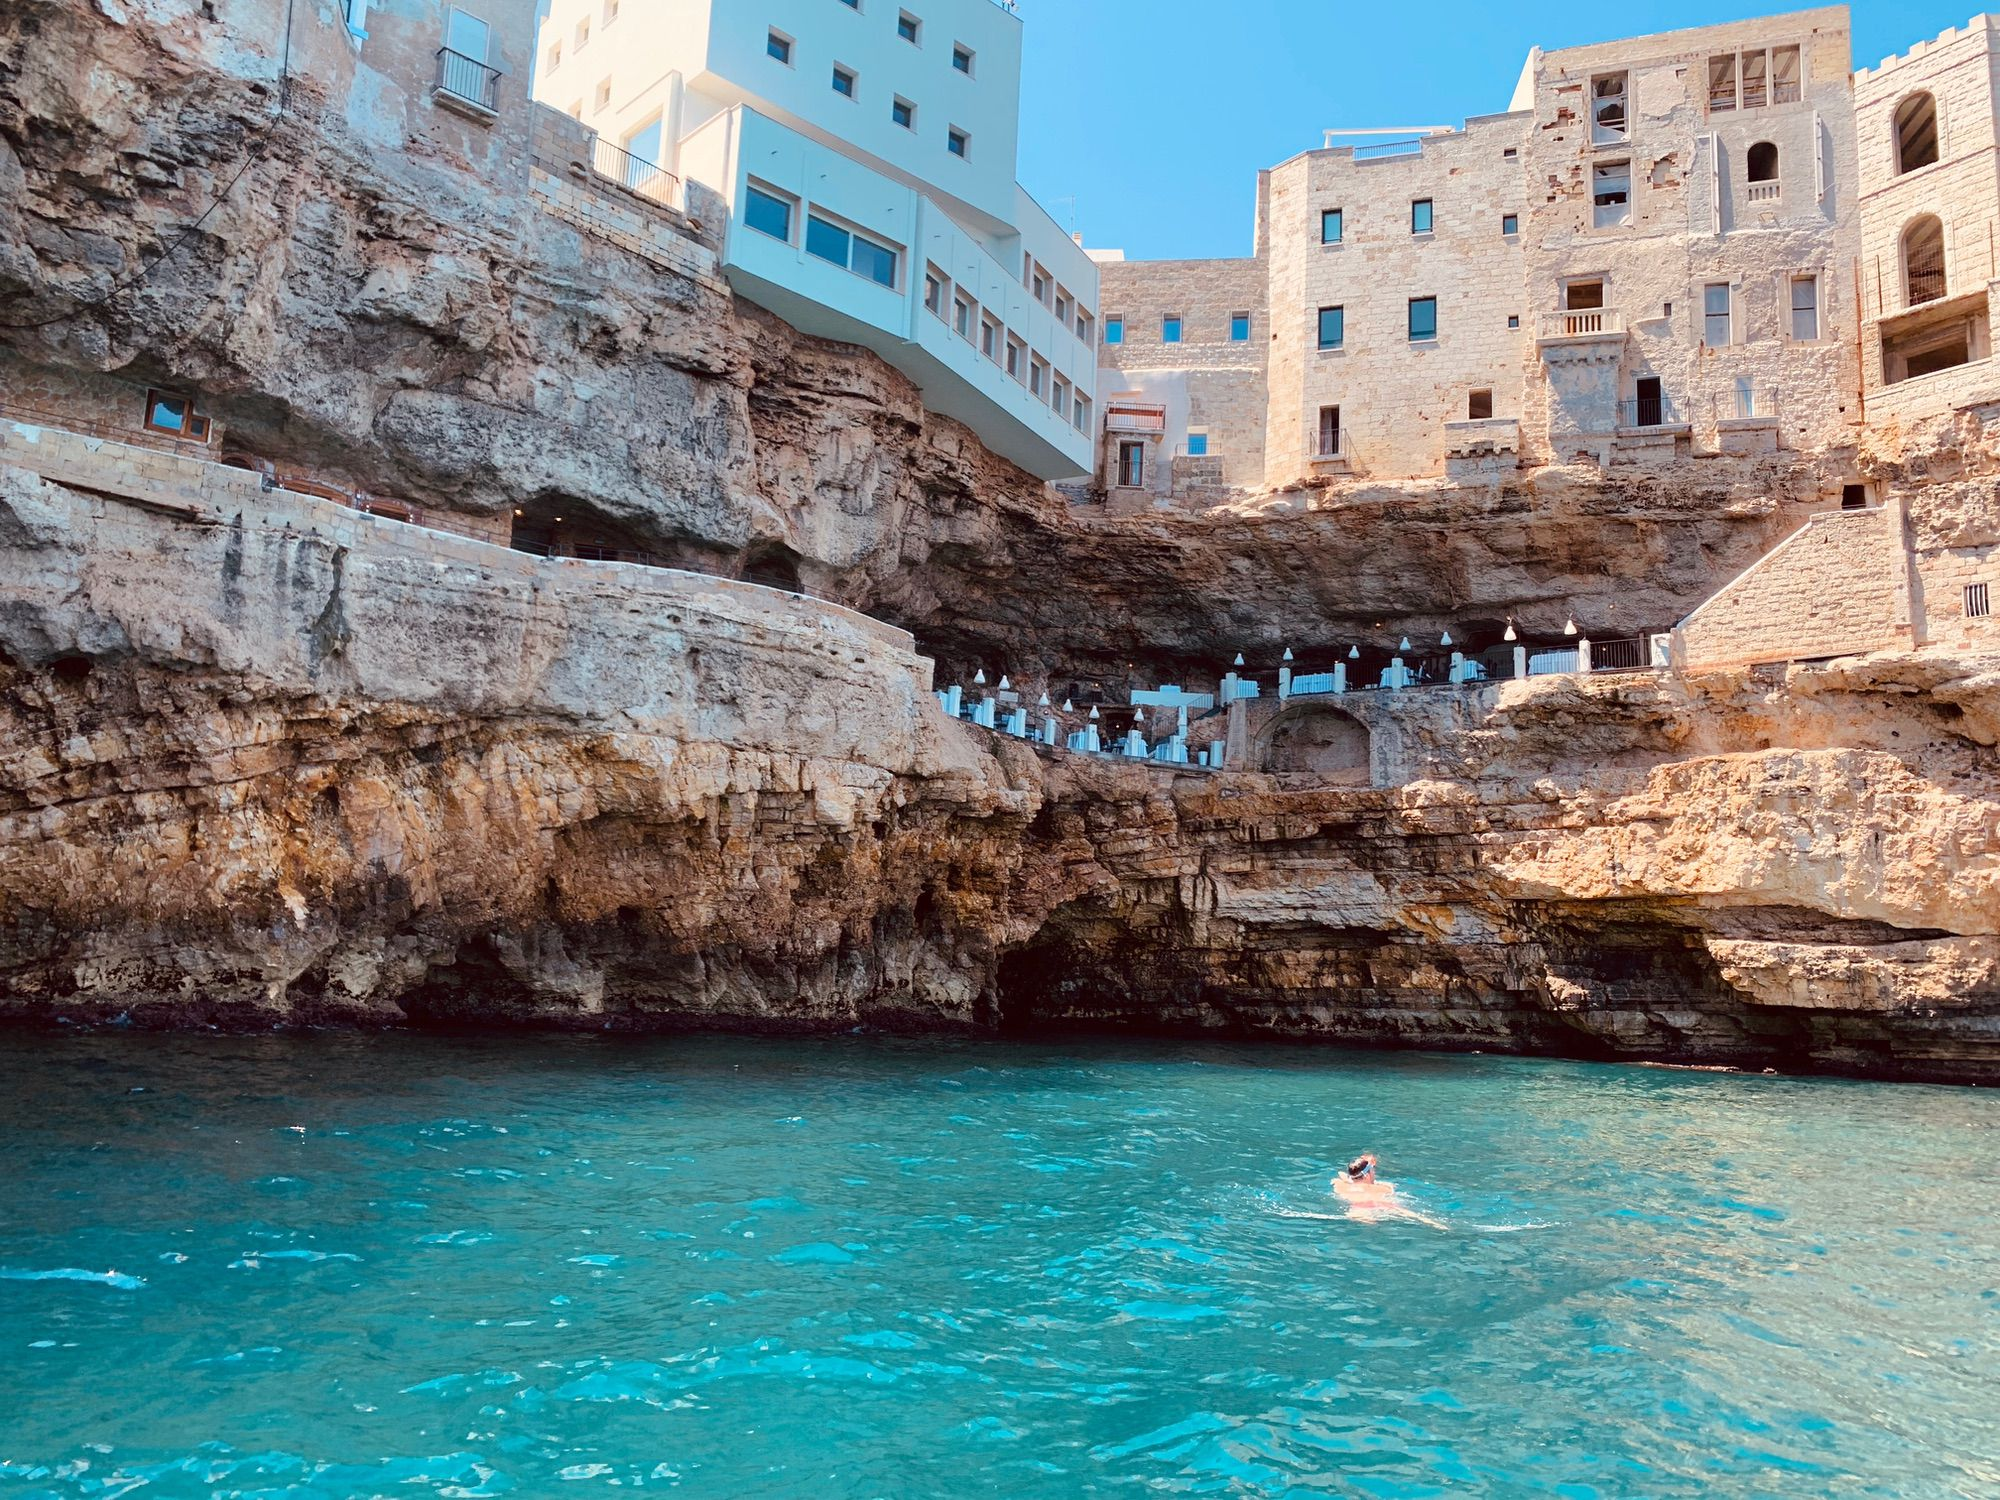 Boat excursion to caves of Polignano